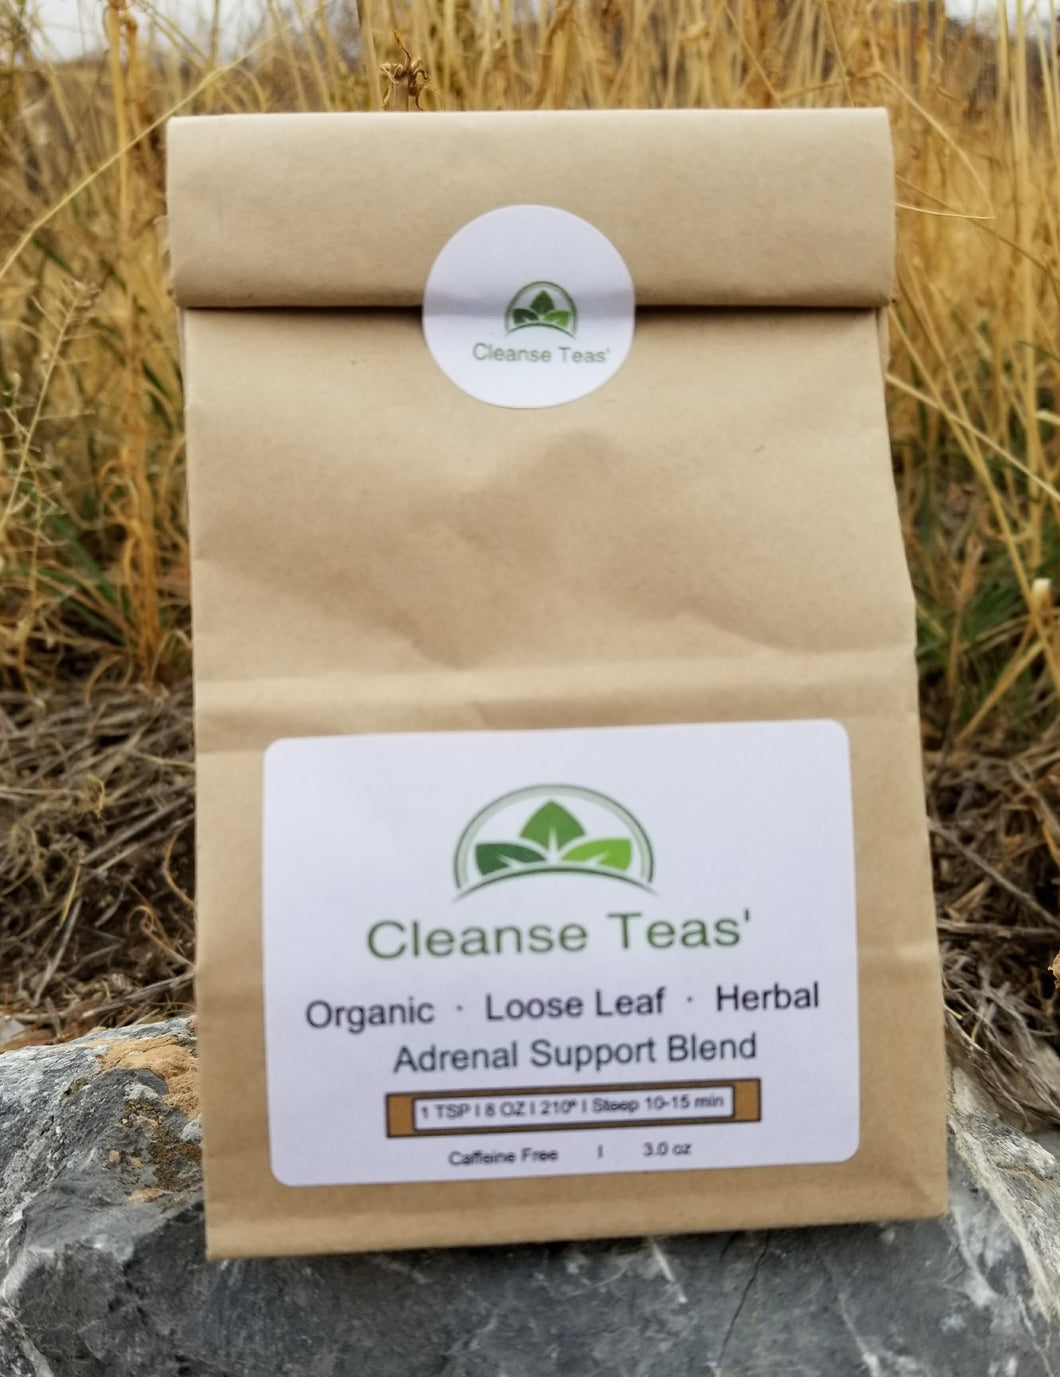 Licorice root eleuthero root schisandra berry ashwagandha root rose hips lemon balm rhodiola cleansing tea's Healing herbs Adrenal Fatigue Support Blend Cleansing tea medical medium organic tea herbal loose leaf healthy tea liver cleanse medical medium tea